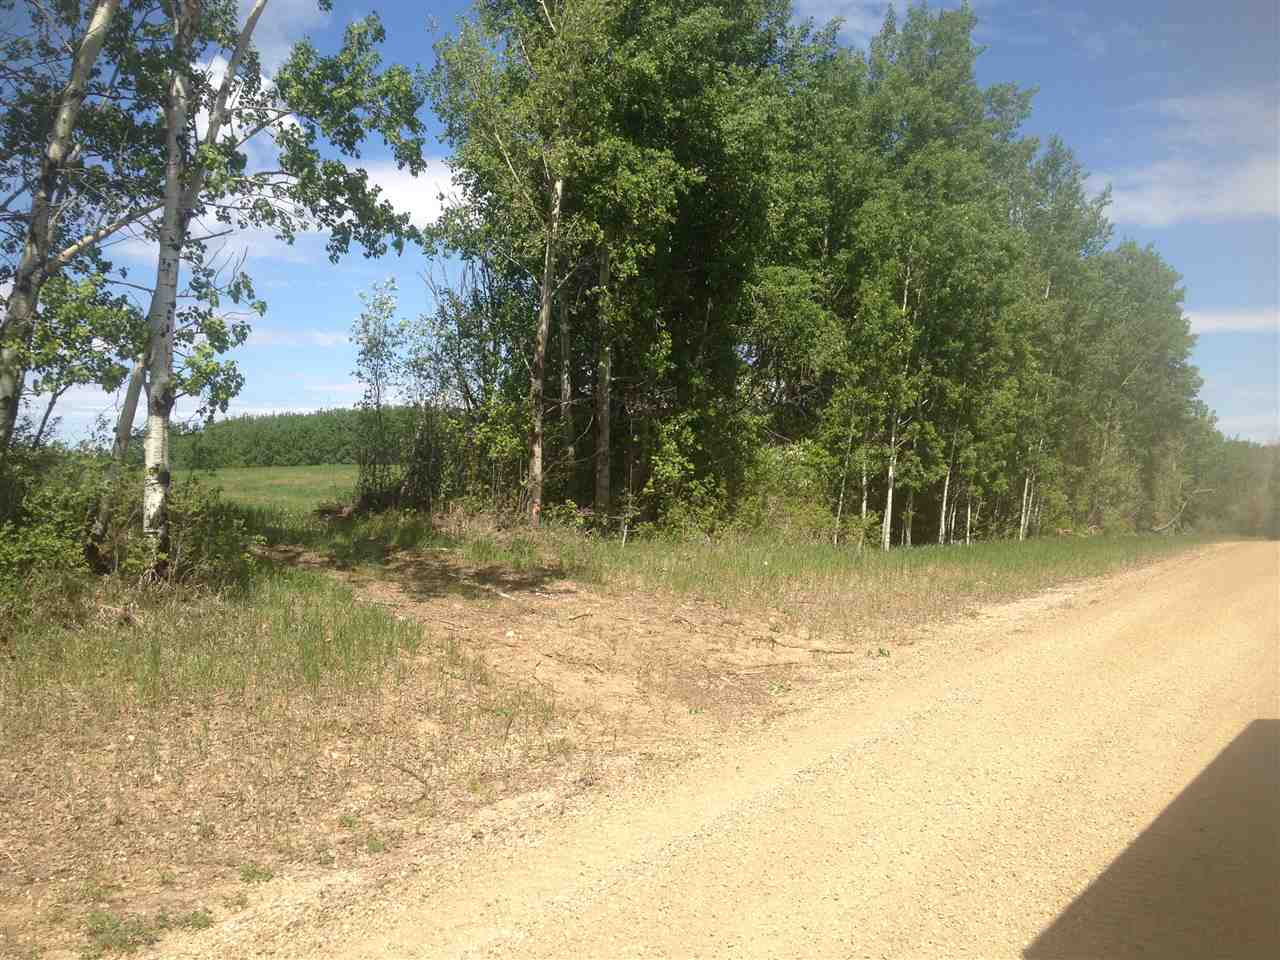 Photo 5: 52502 Range Road 22A: Rural Parkland County Rural Land/Vacant Lot for sale : MLS® # E4069524